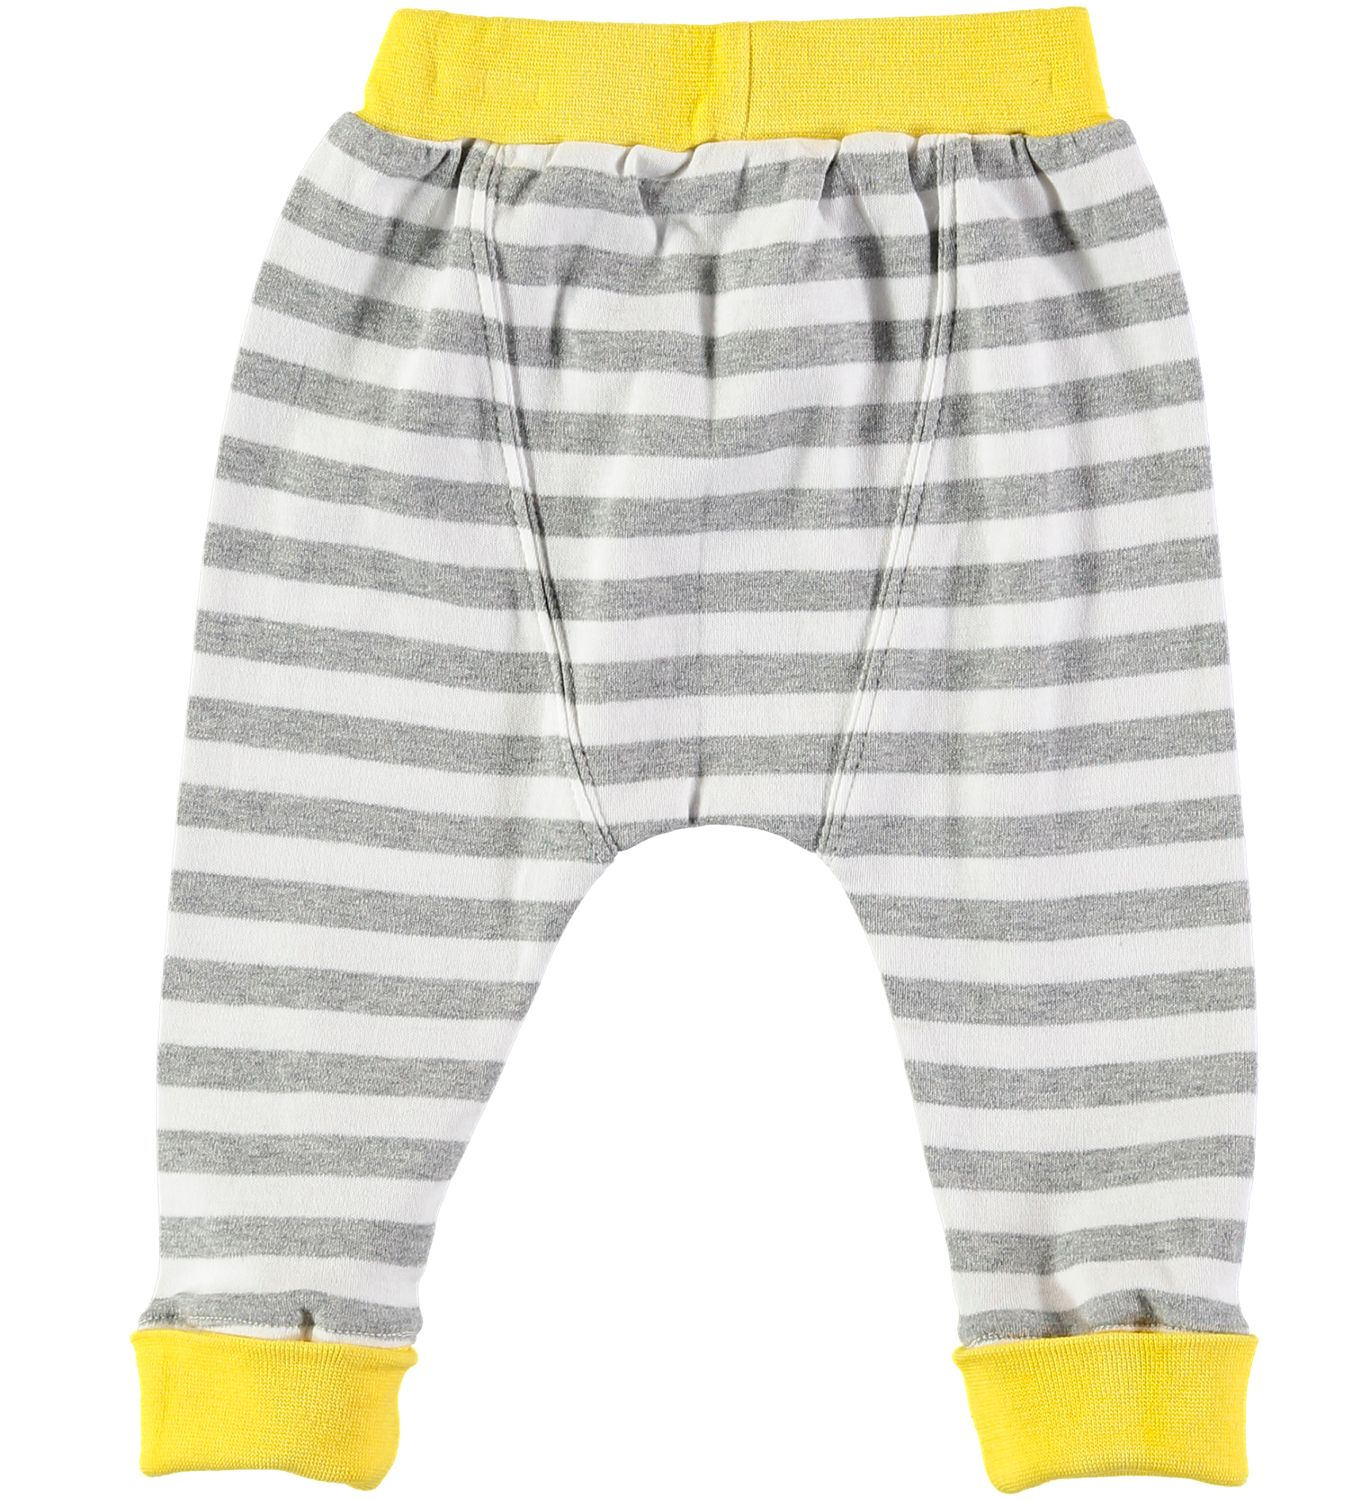 Rockin' Baby Rockin' Baby Boys Grey Stripe Leggings, Grey